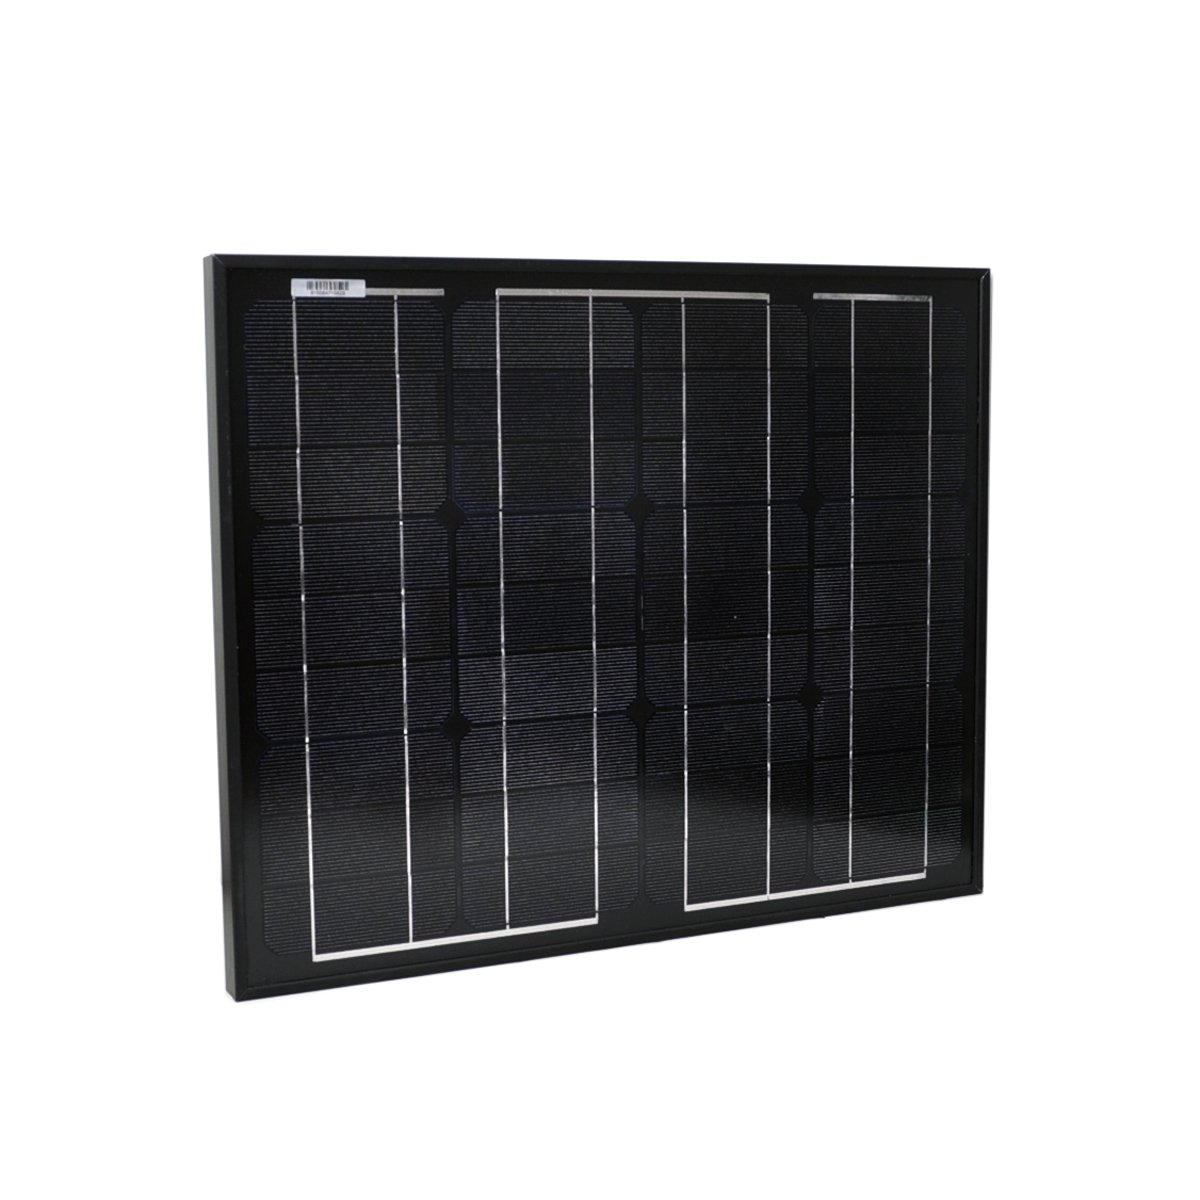 Instapark SP Series Mono-crystalline Photovoltaic PV Solar Panel Charge Controller NOT Included, 30 Watts